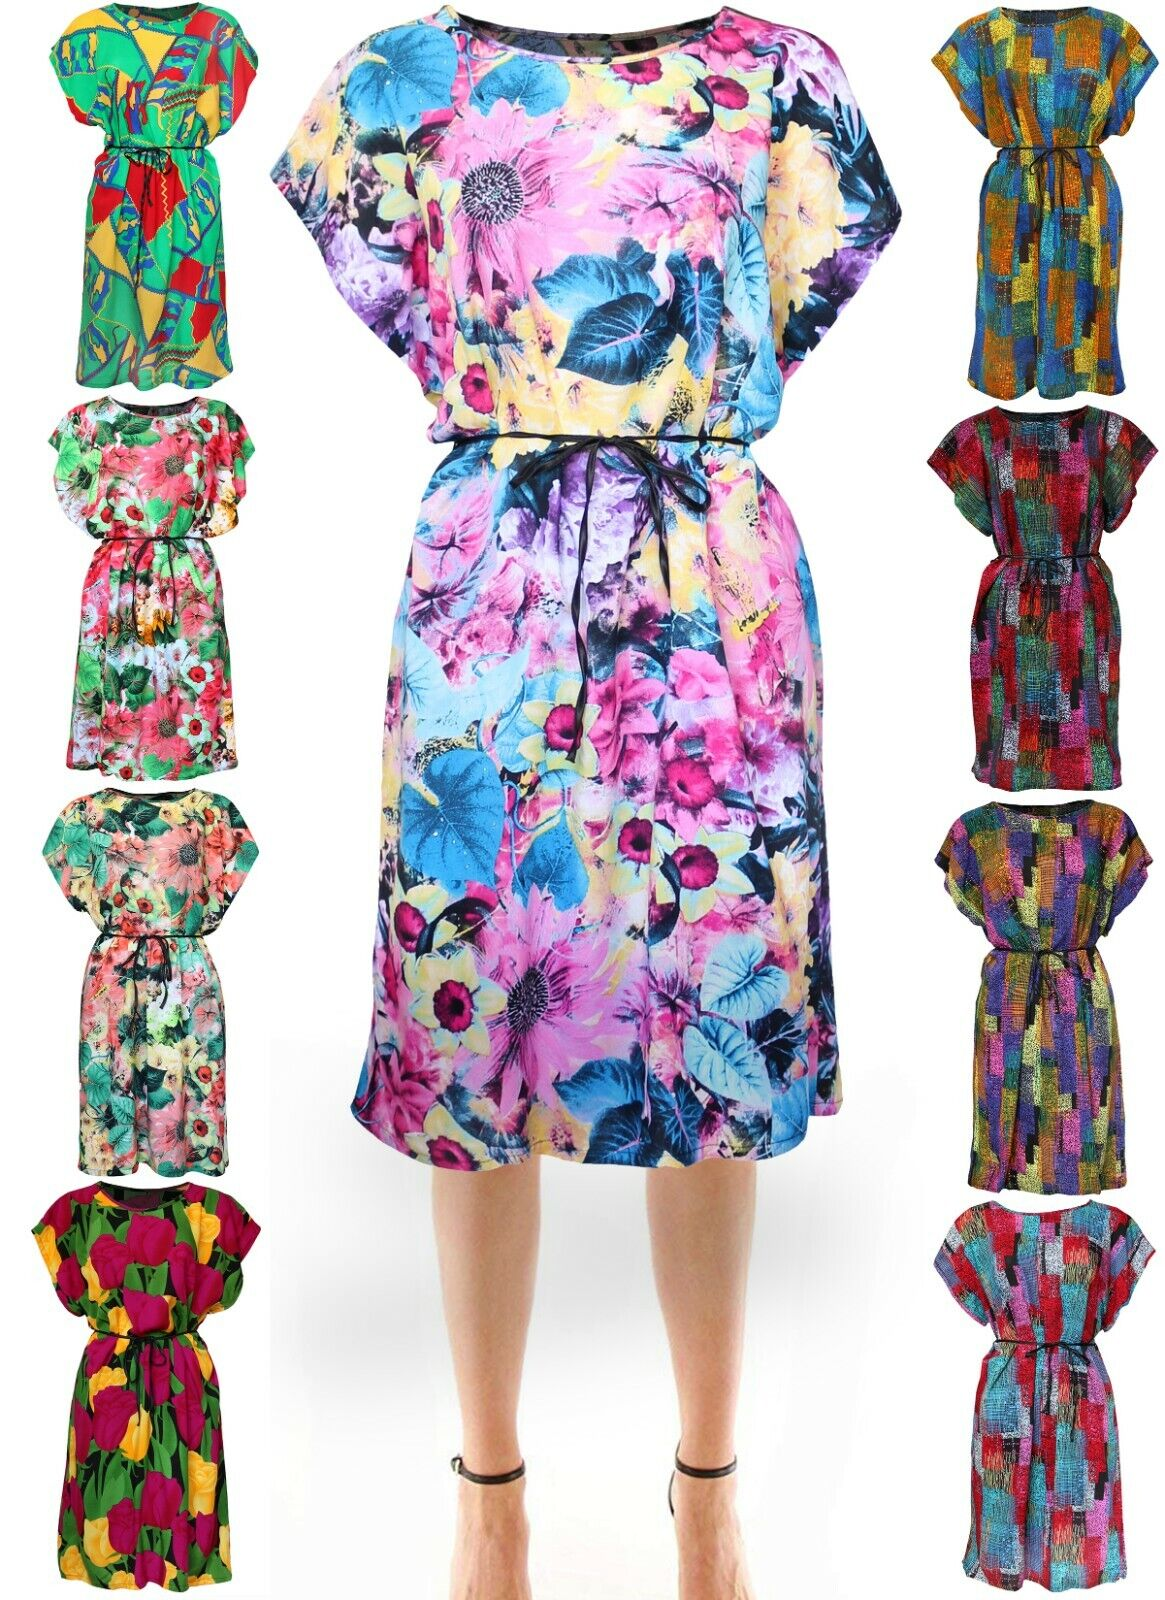 Women's Cotton Summer Vintage, African, Flower Tunic Dress Clothing, Shoes & Accessories